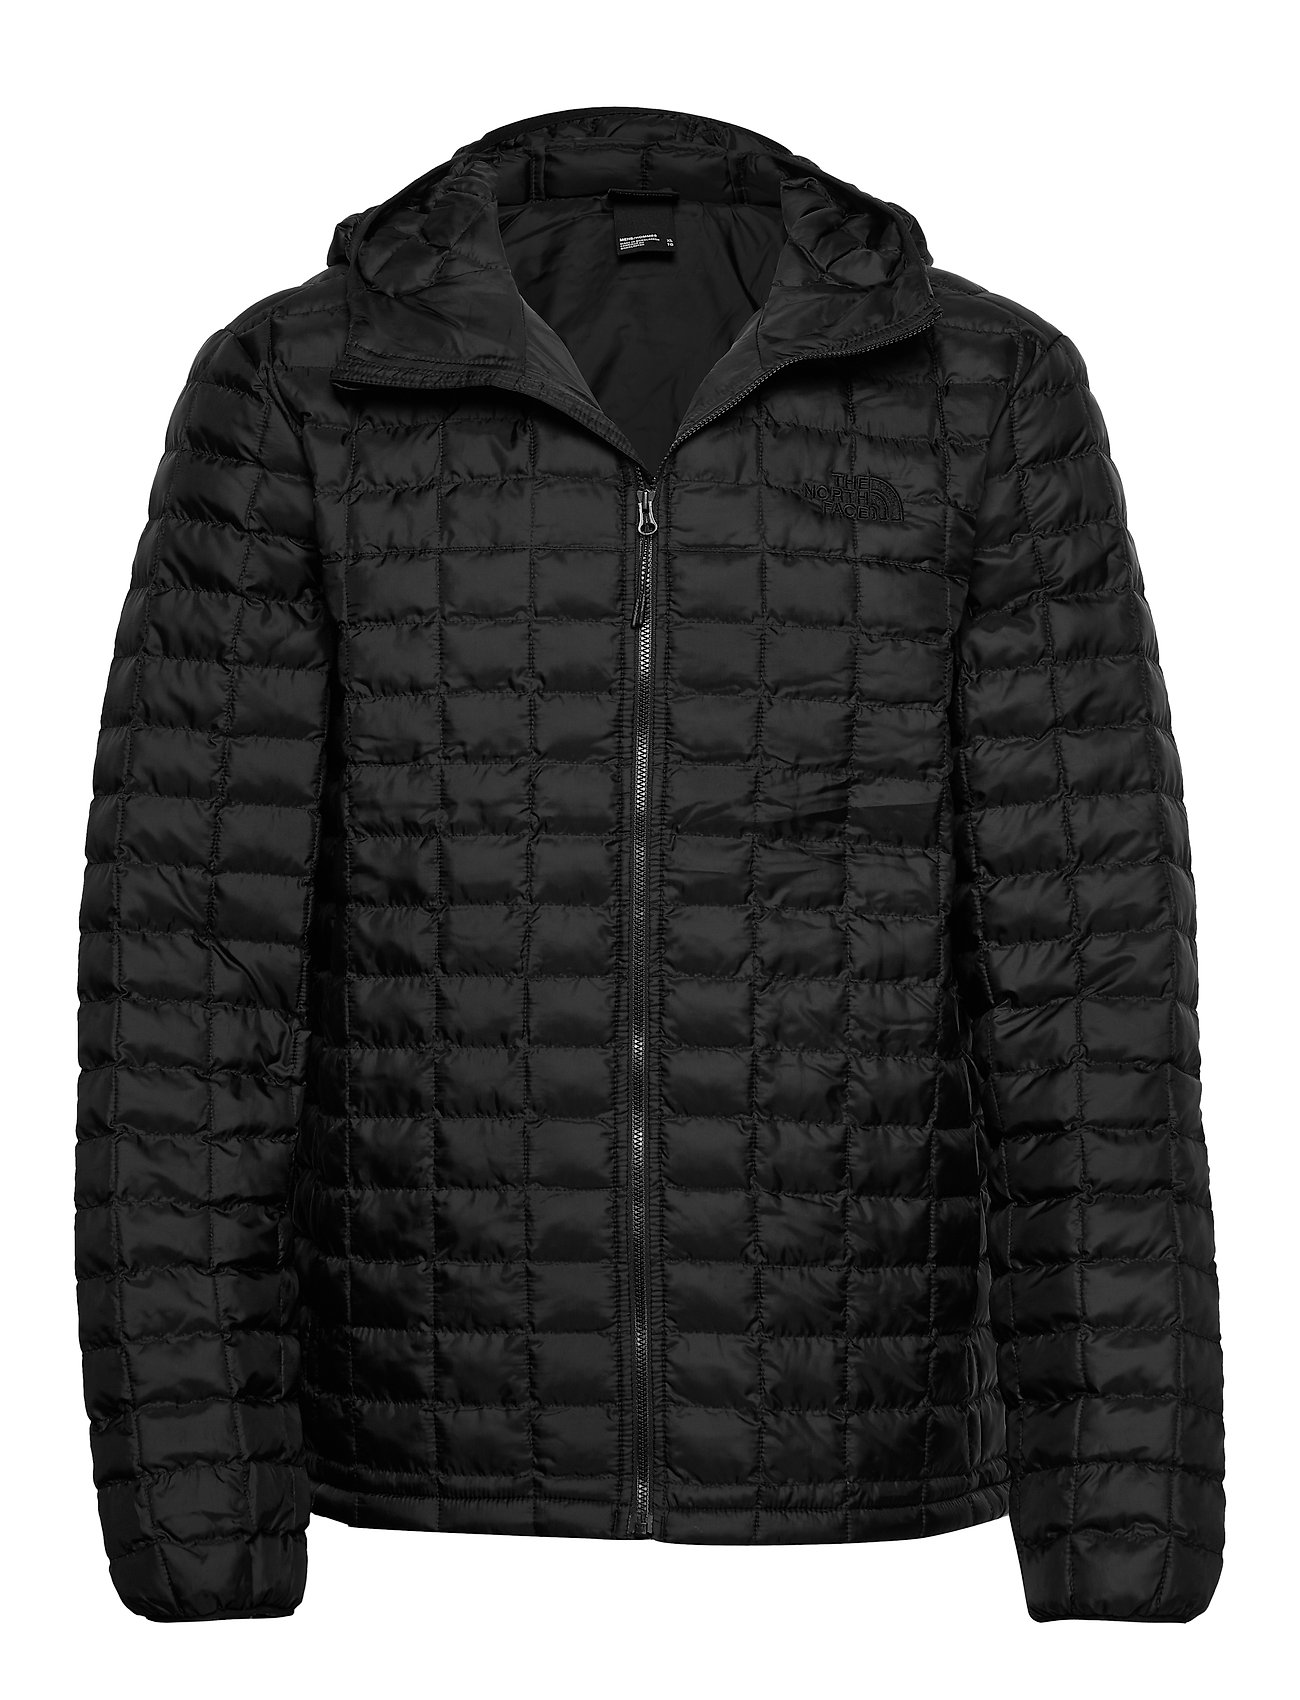 The North Face M THERMOBALL ECO HOO - TNF BLACK MATTE